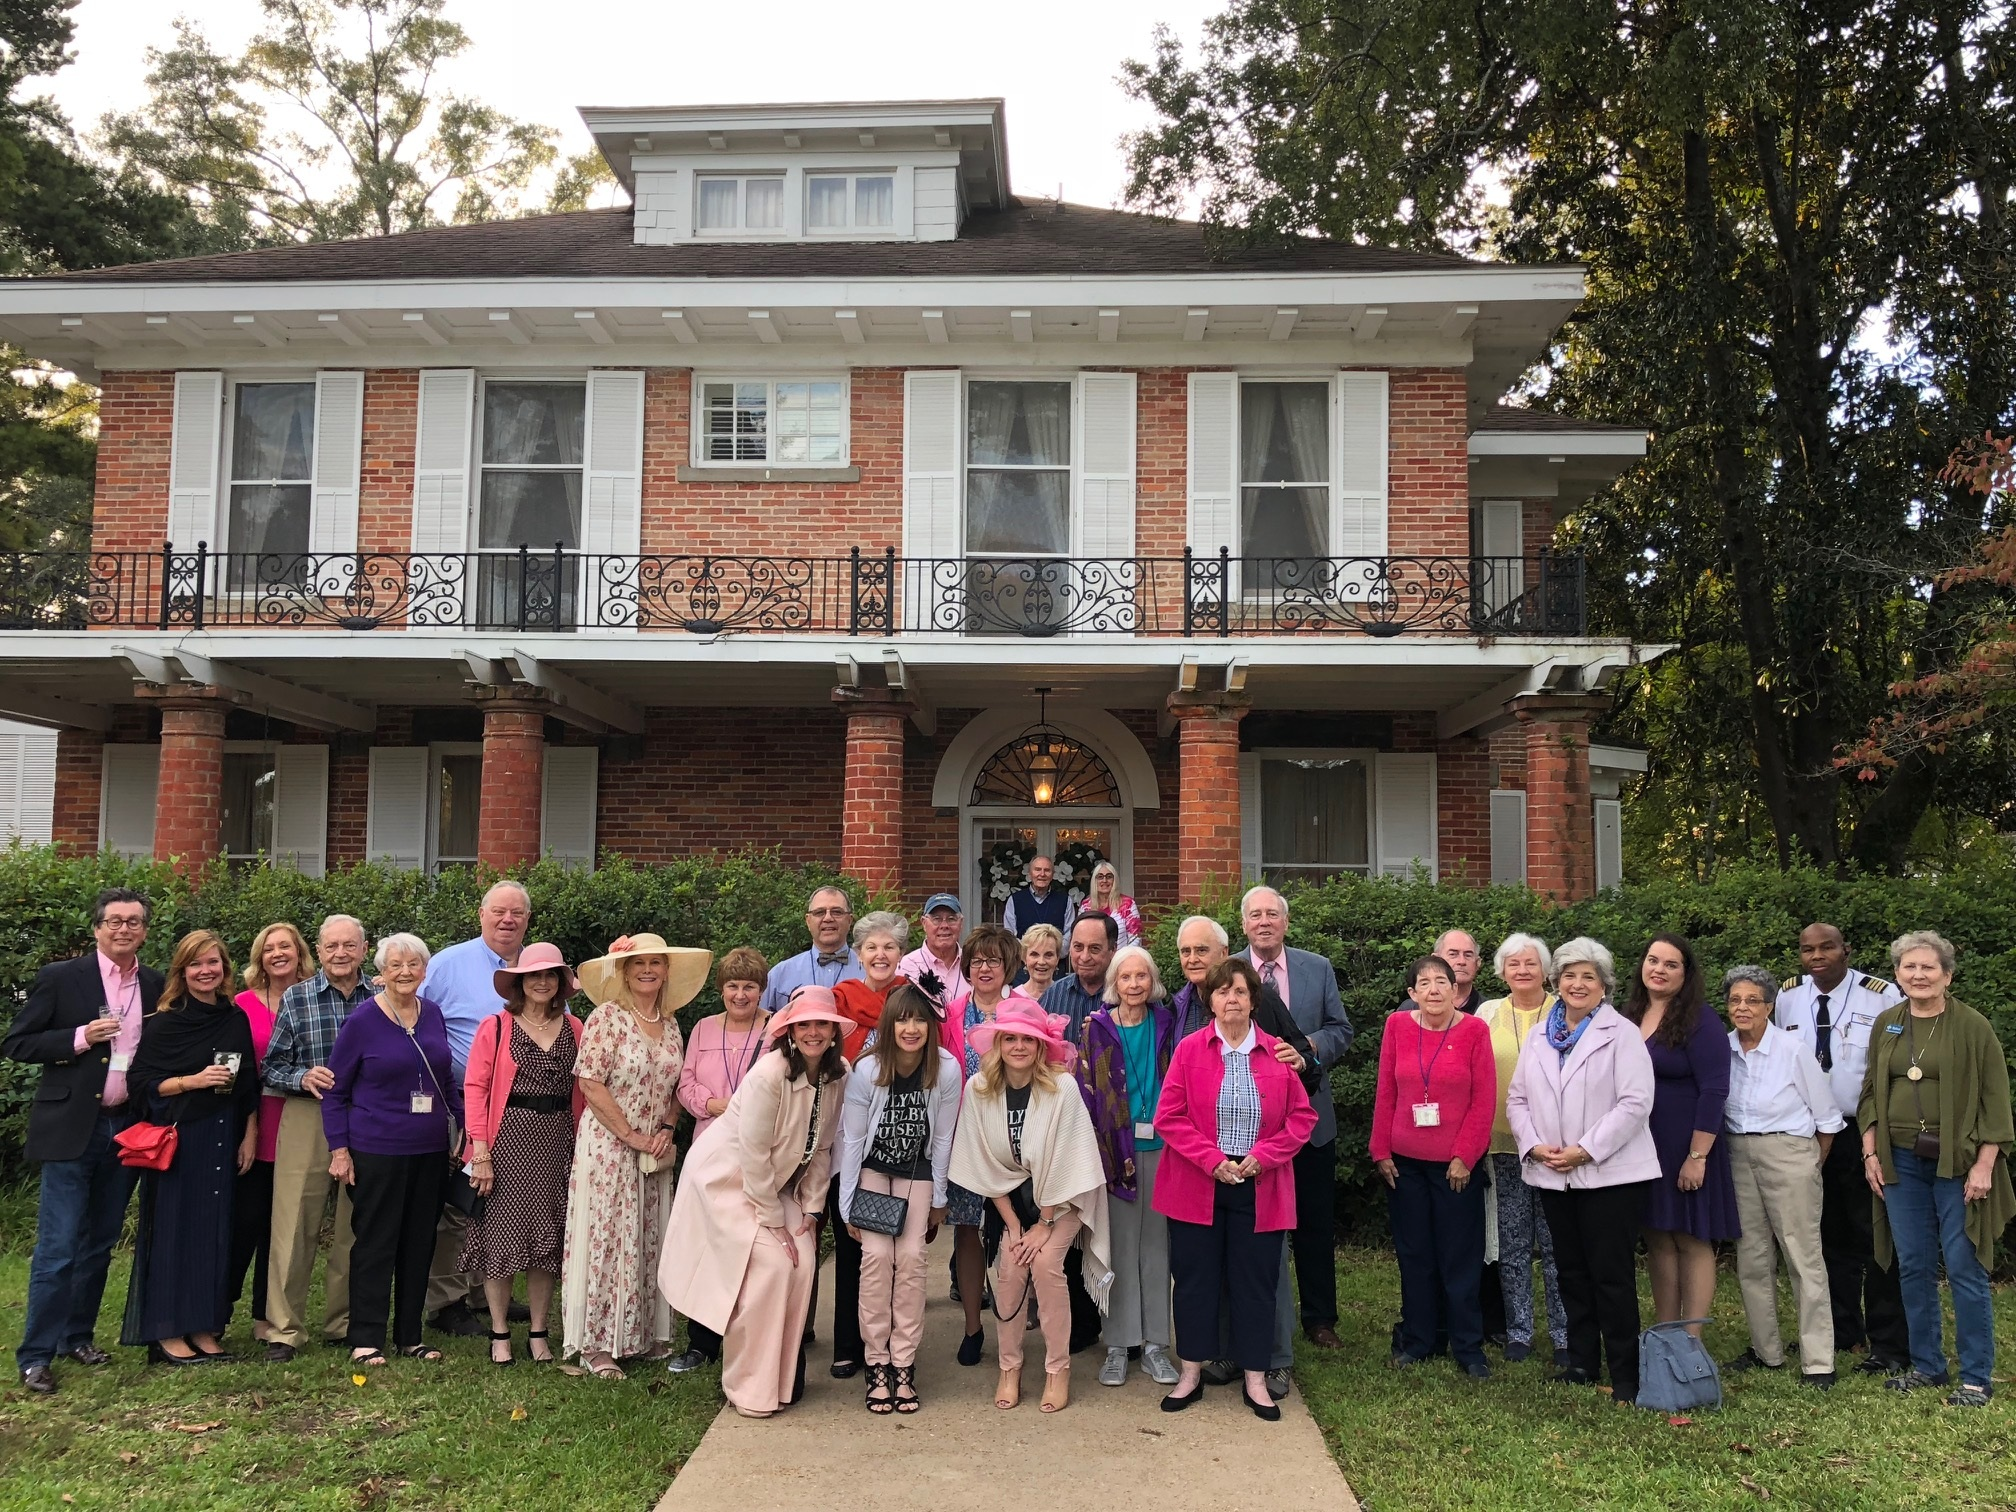 Our Preserve Louisiana Group in October, 2018 at the Steel Magnolia House for a tour and mint julep party!